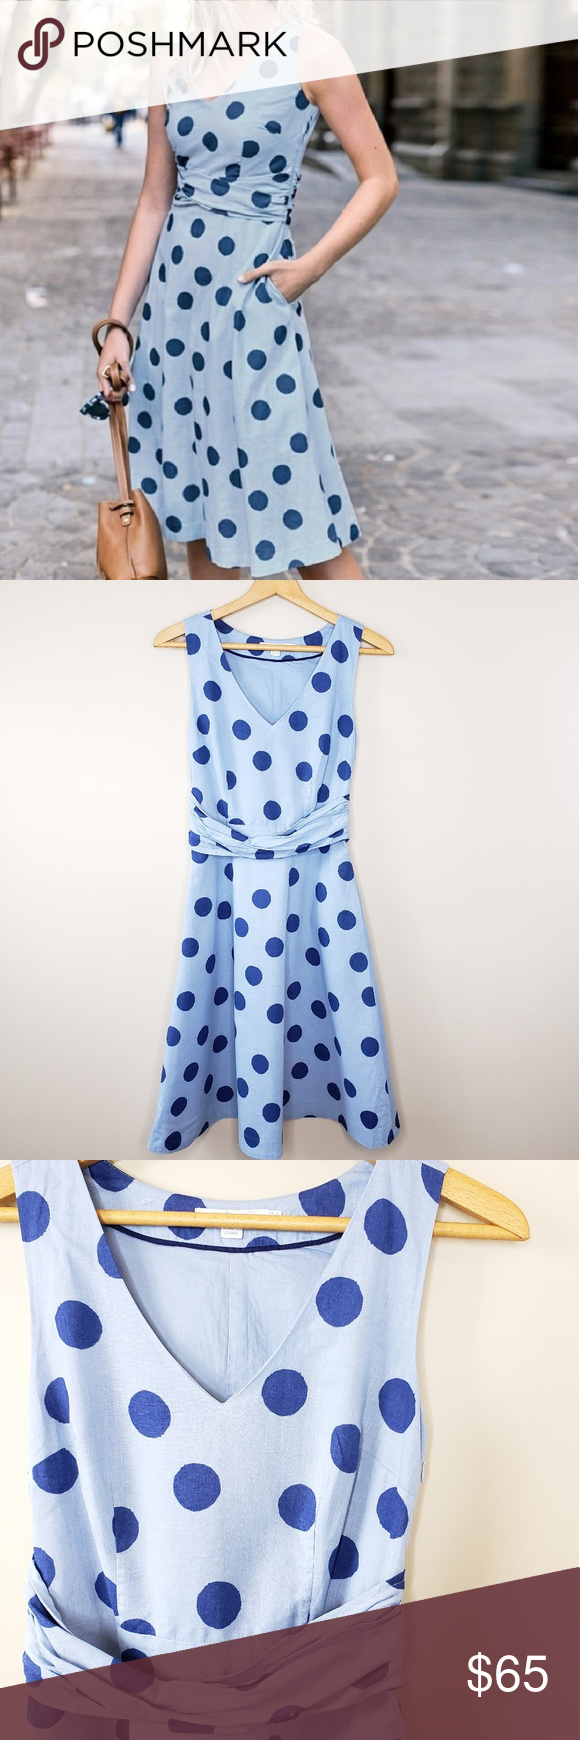 49b71e5a3ef Boden | Lois Scattered Polka Dot Dress Boden | Lois Scattered Polka Dot  Dress. Size US 6. Light blue A-line dress with navy blue polka dot print.